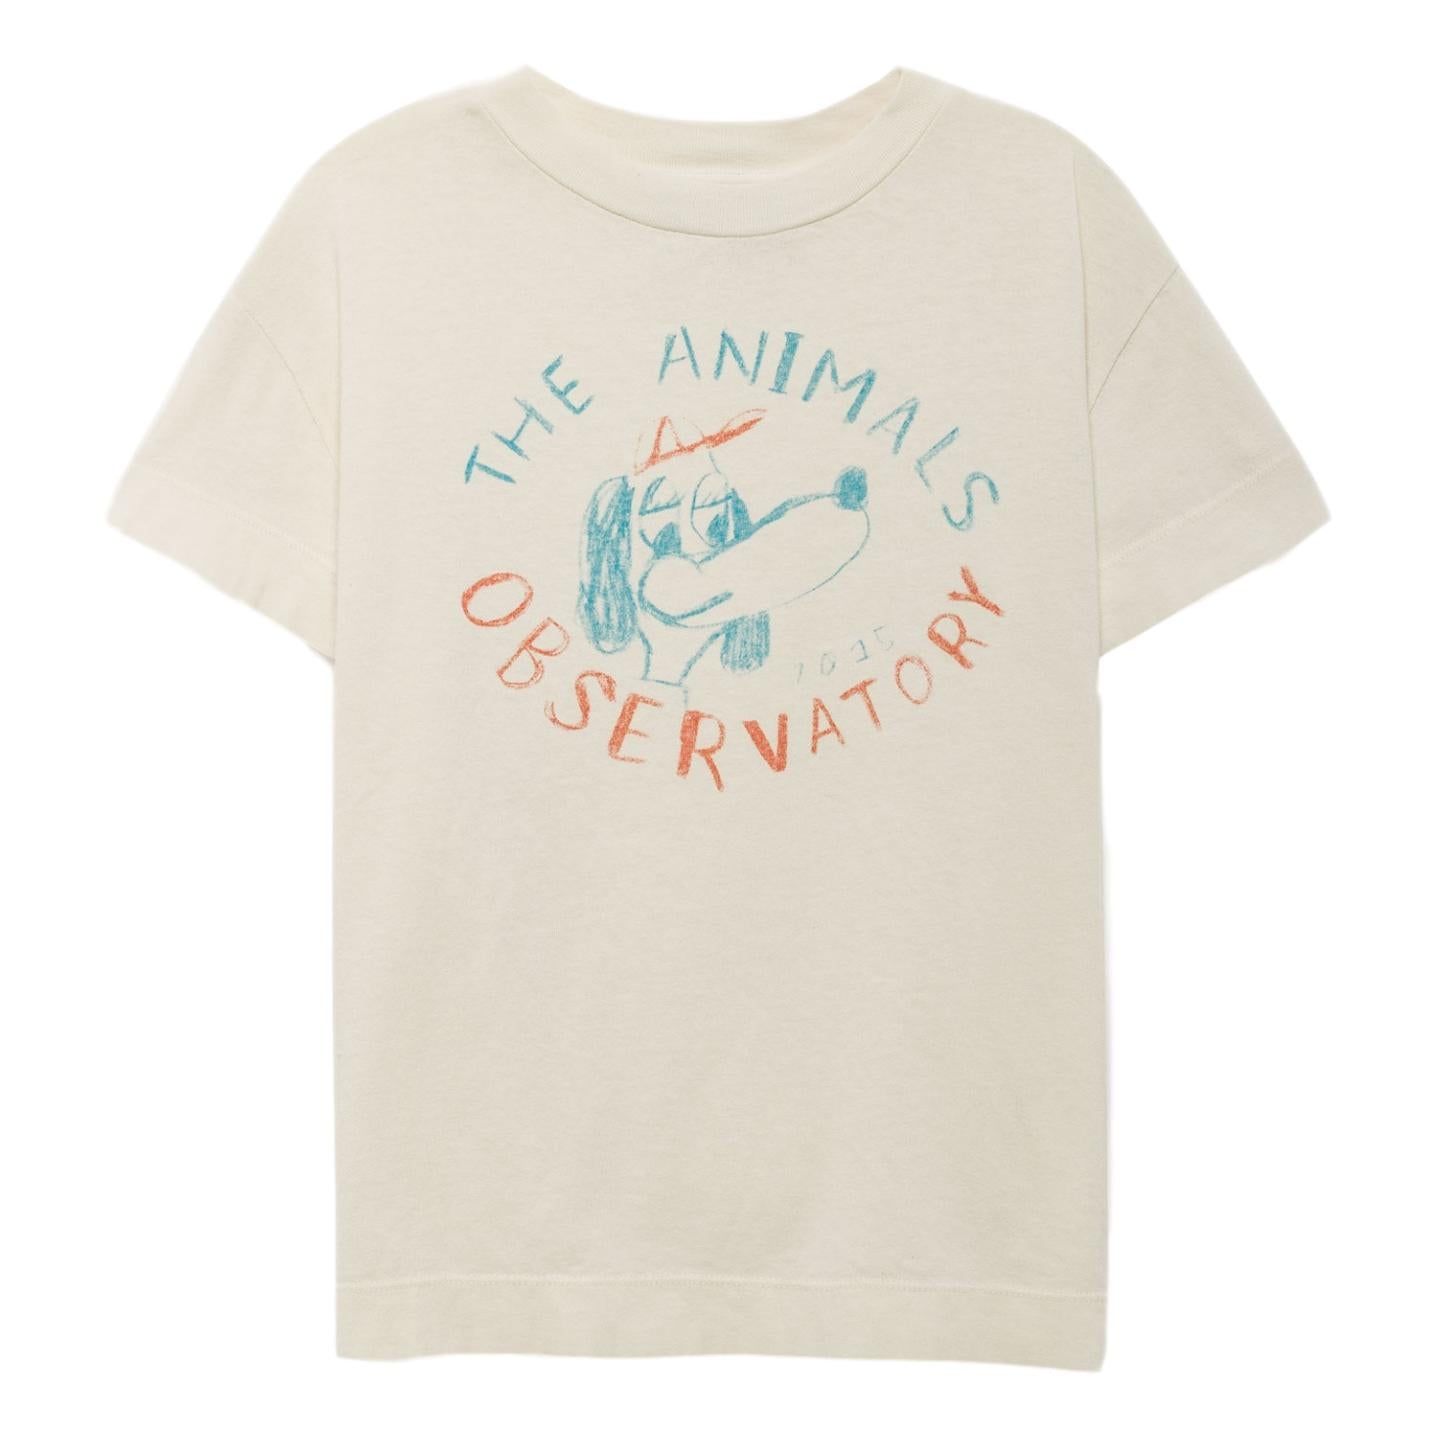 THE ANIMALS OBSERVATORY - Raw White Dogs Rooster Kids Tee